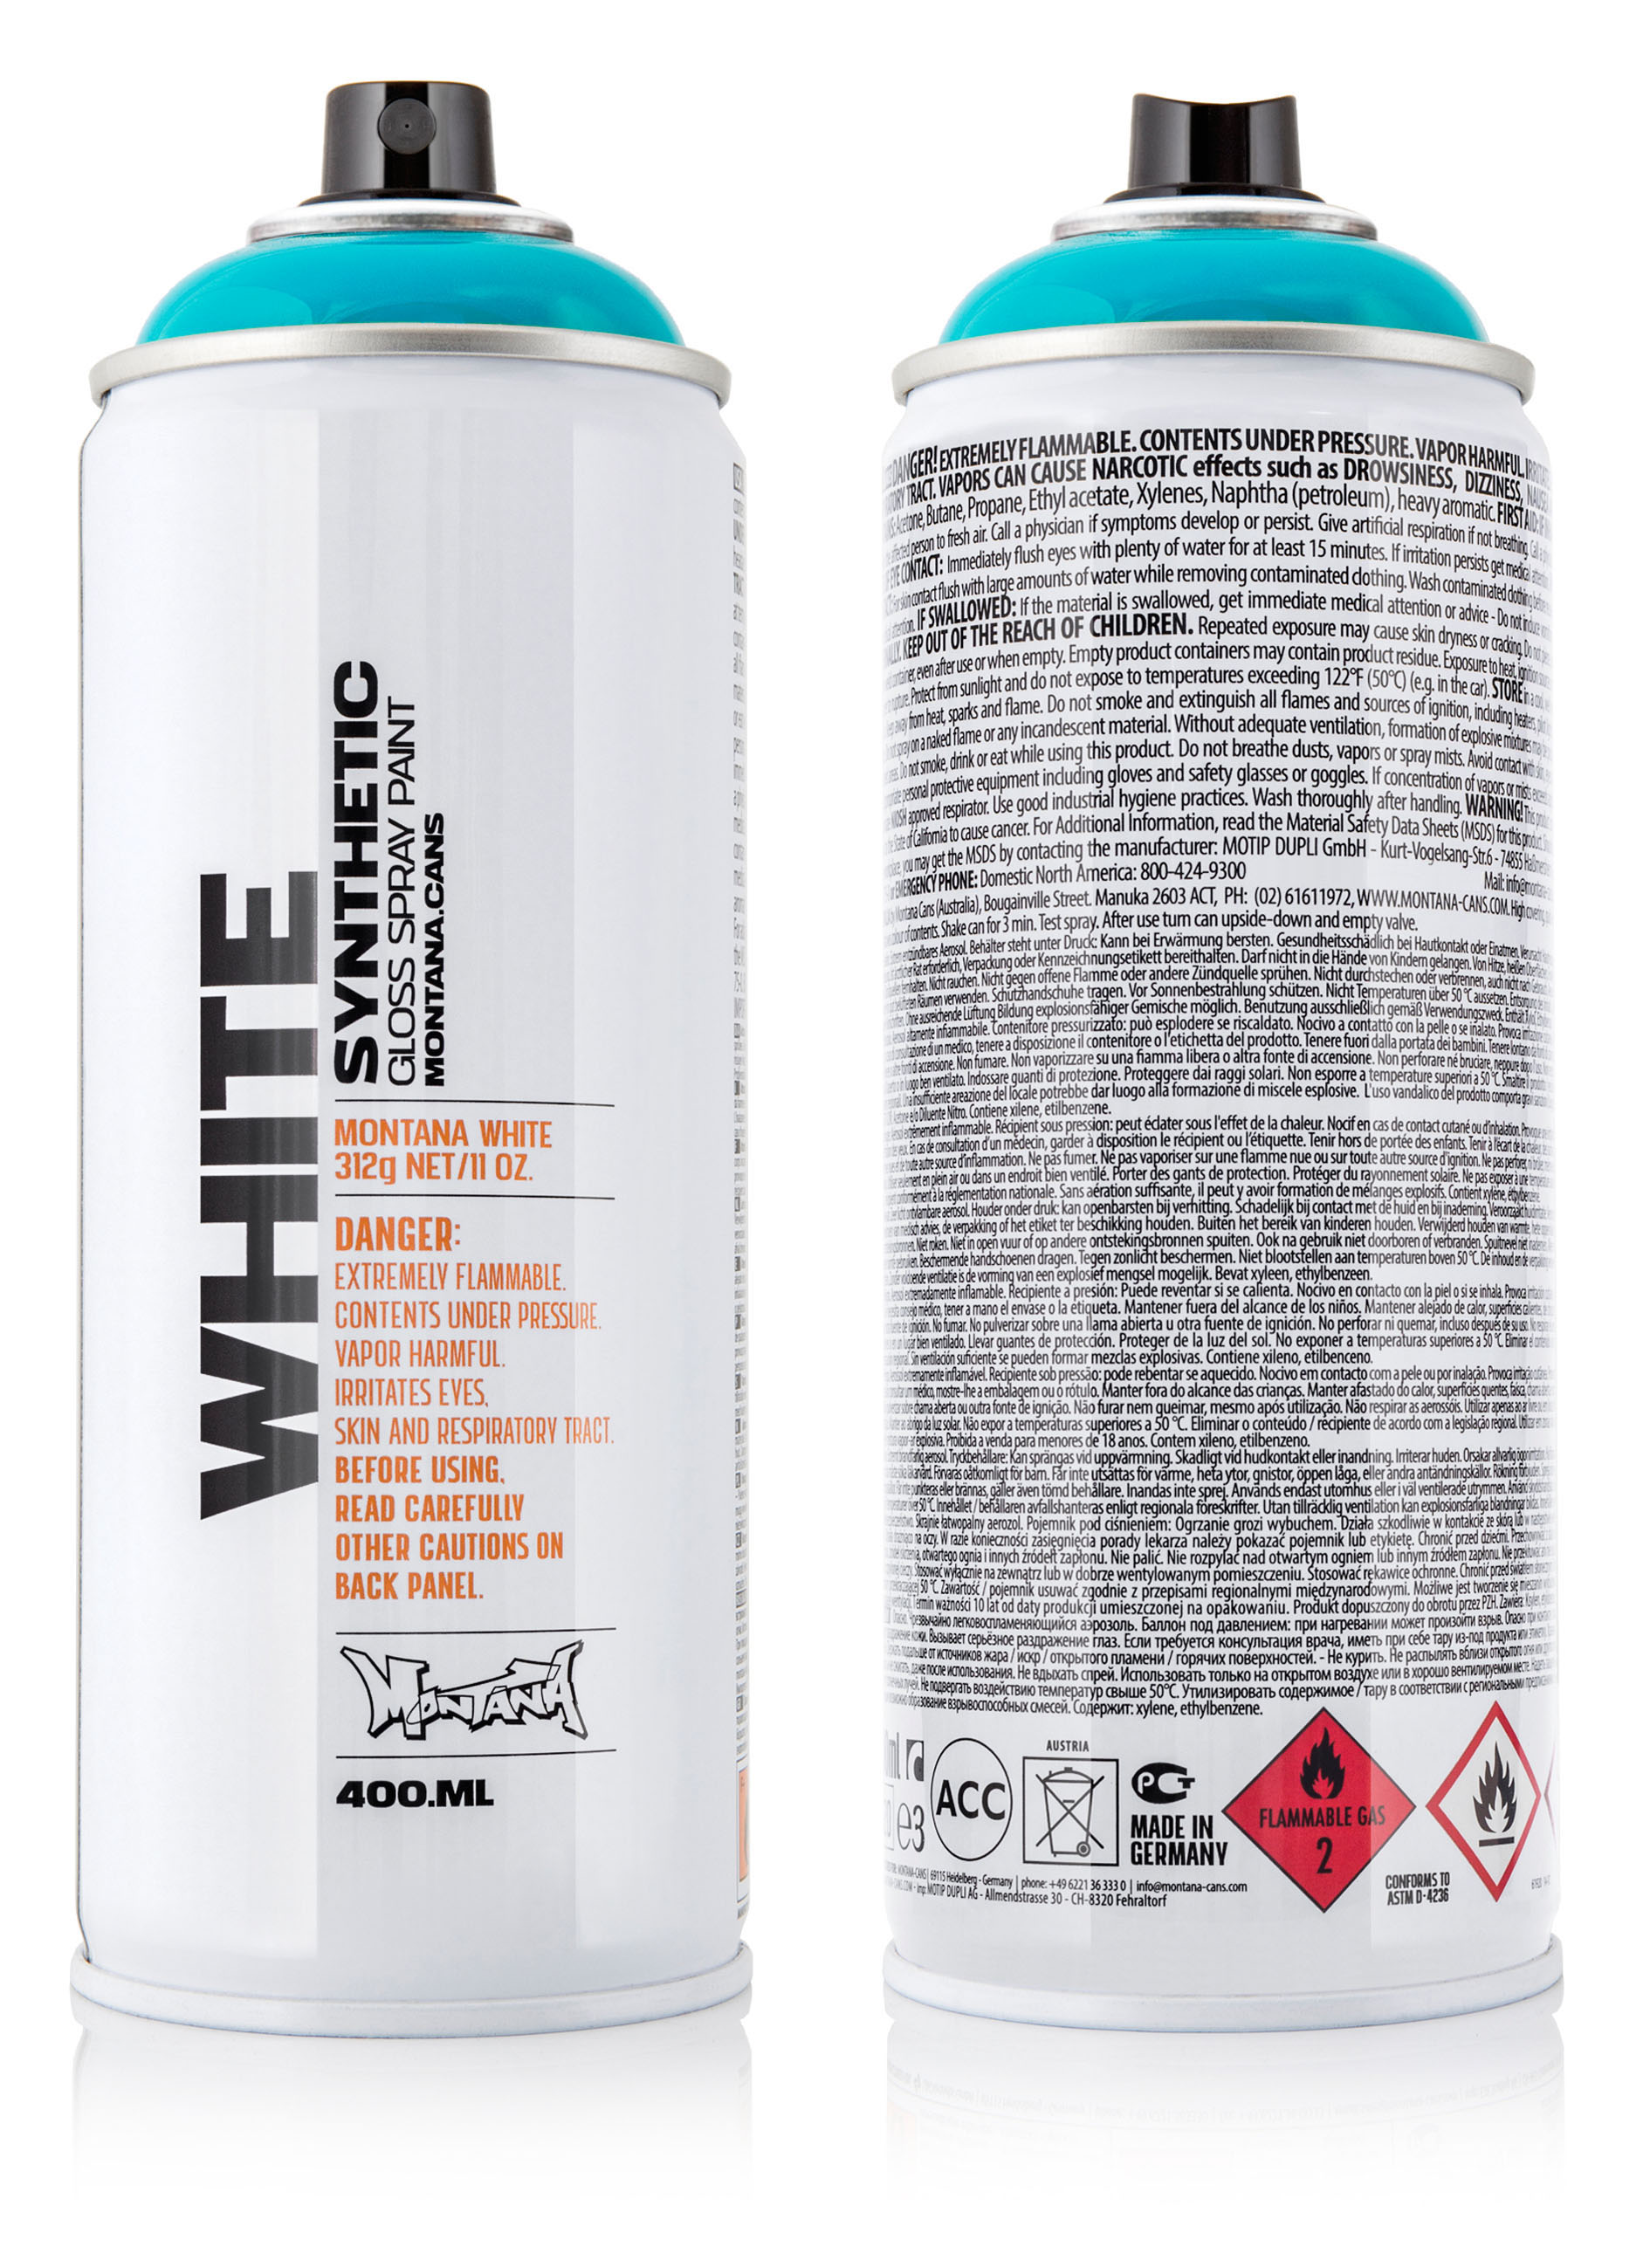 Montana White Spray Paint 400ml | MONTANA-CANS - Highest Quality